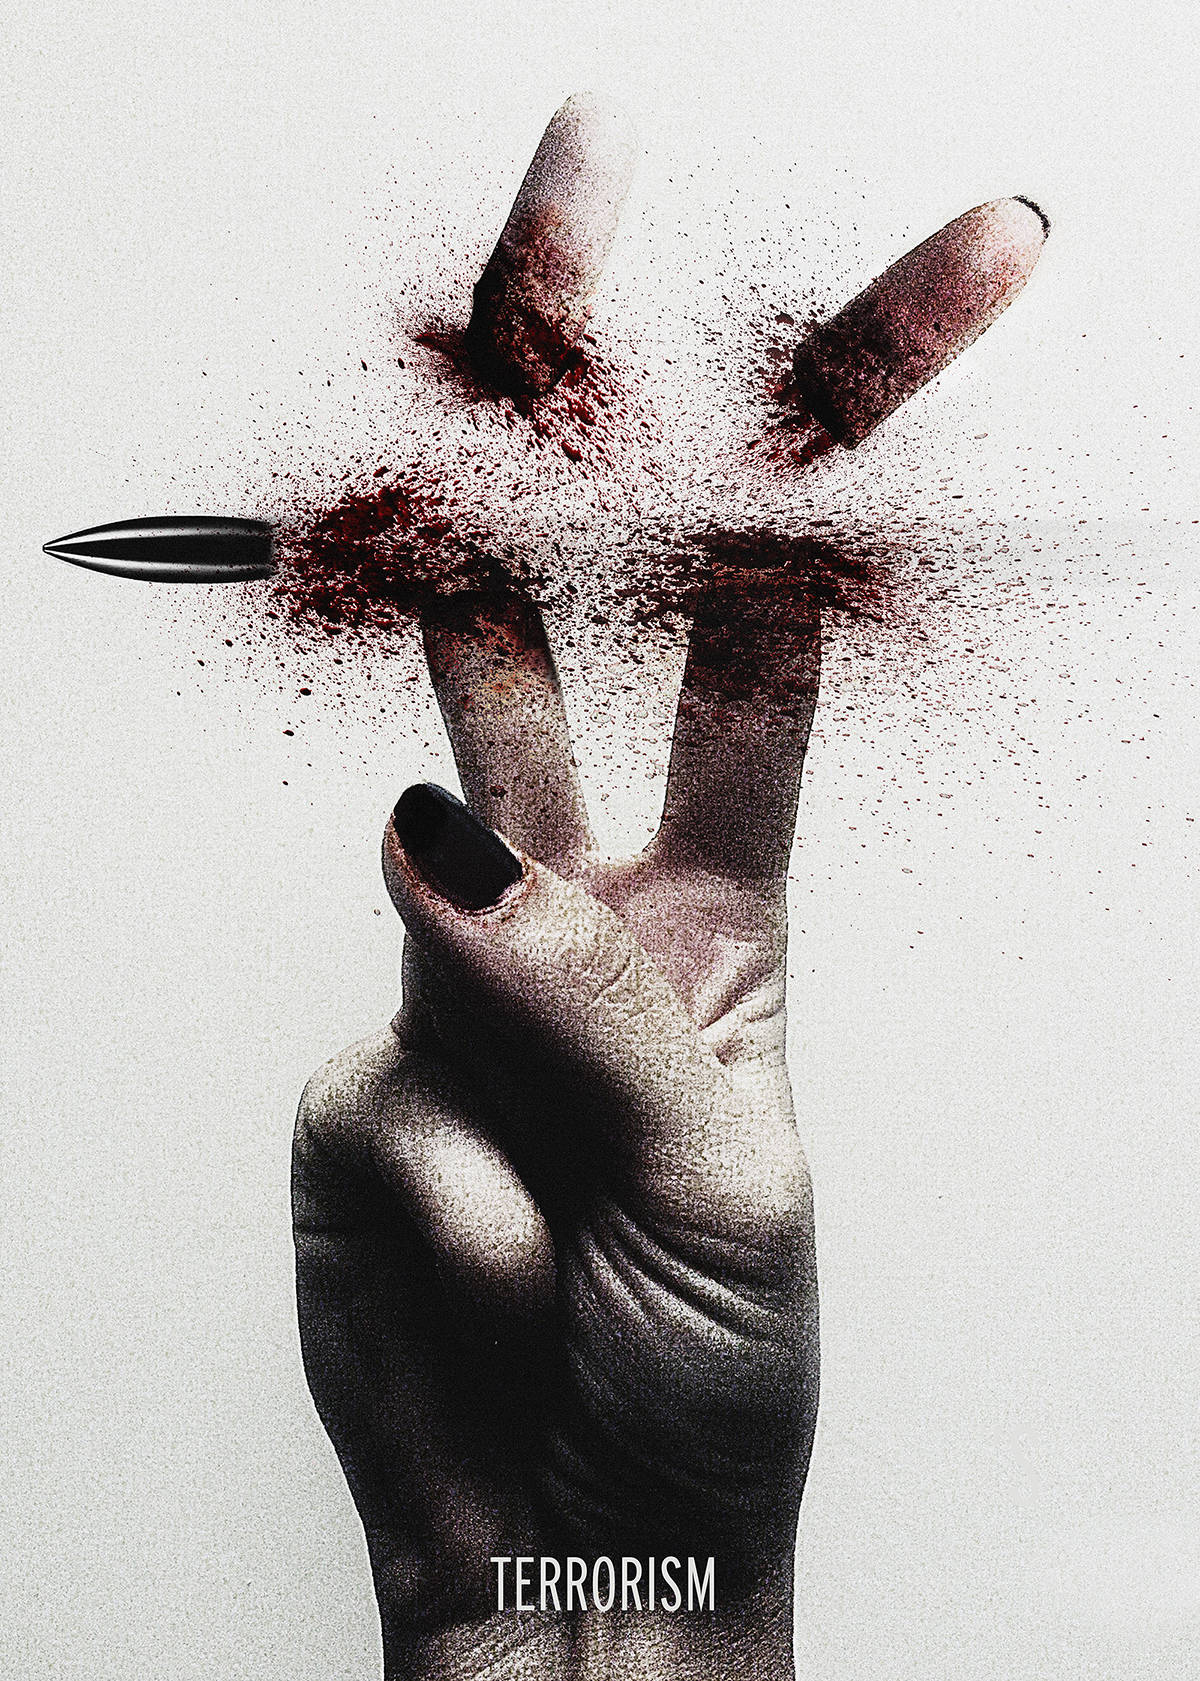 Gritty photo of a hand making a peace sign is bloodied by a bullet cutting off the fingers above the word 'Terrorism.'